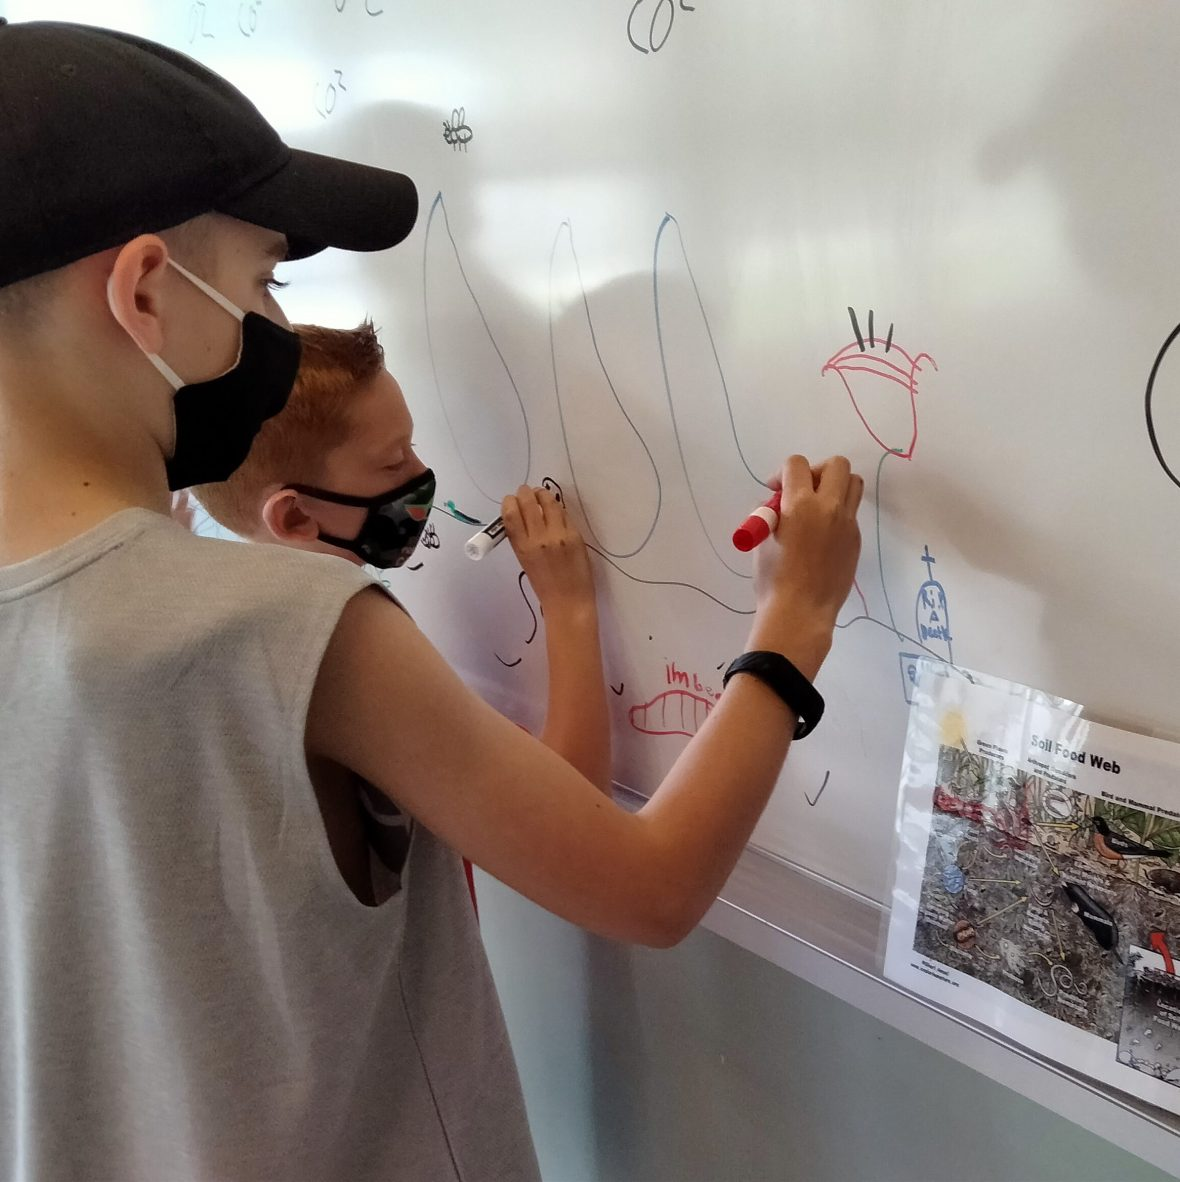 Kids design ecosystems in Enrichment Programs for Students